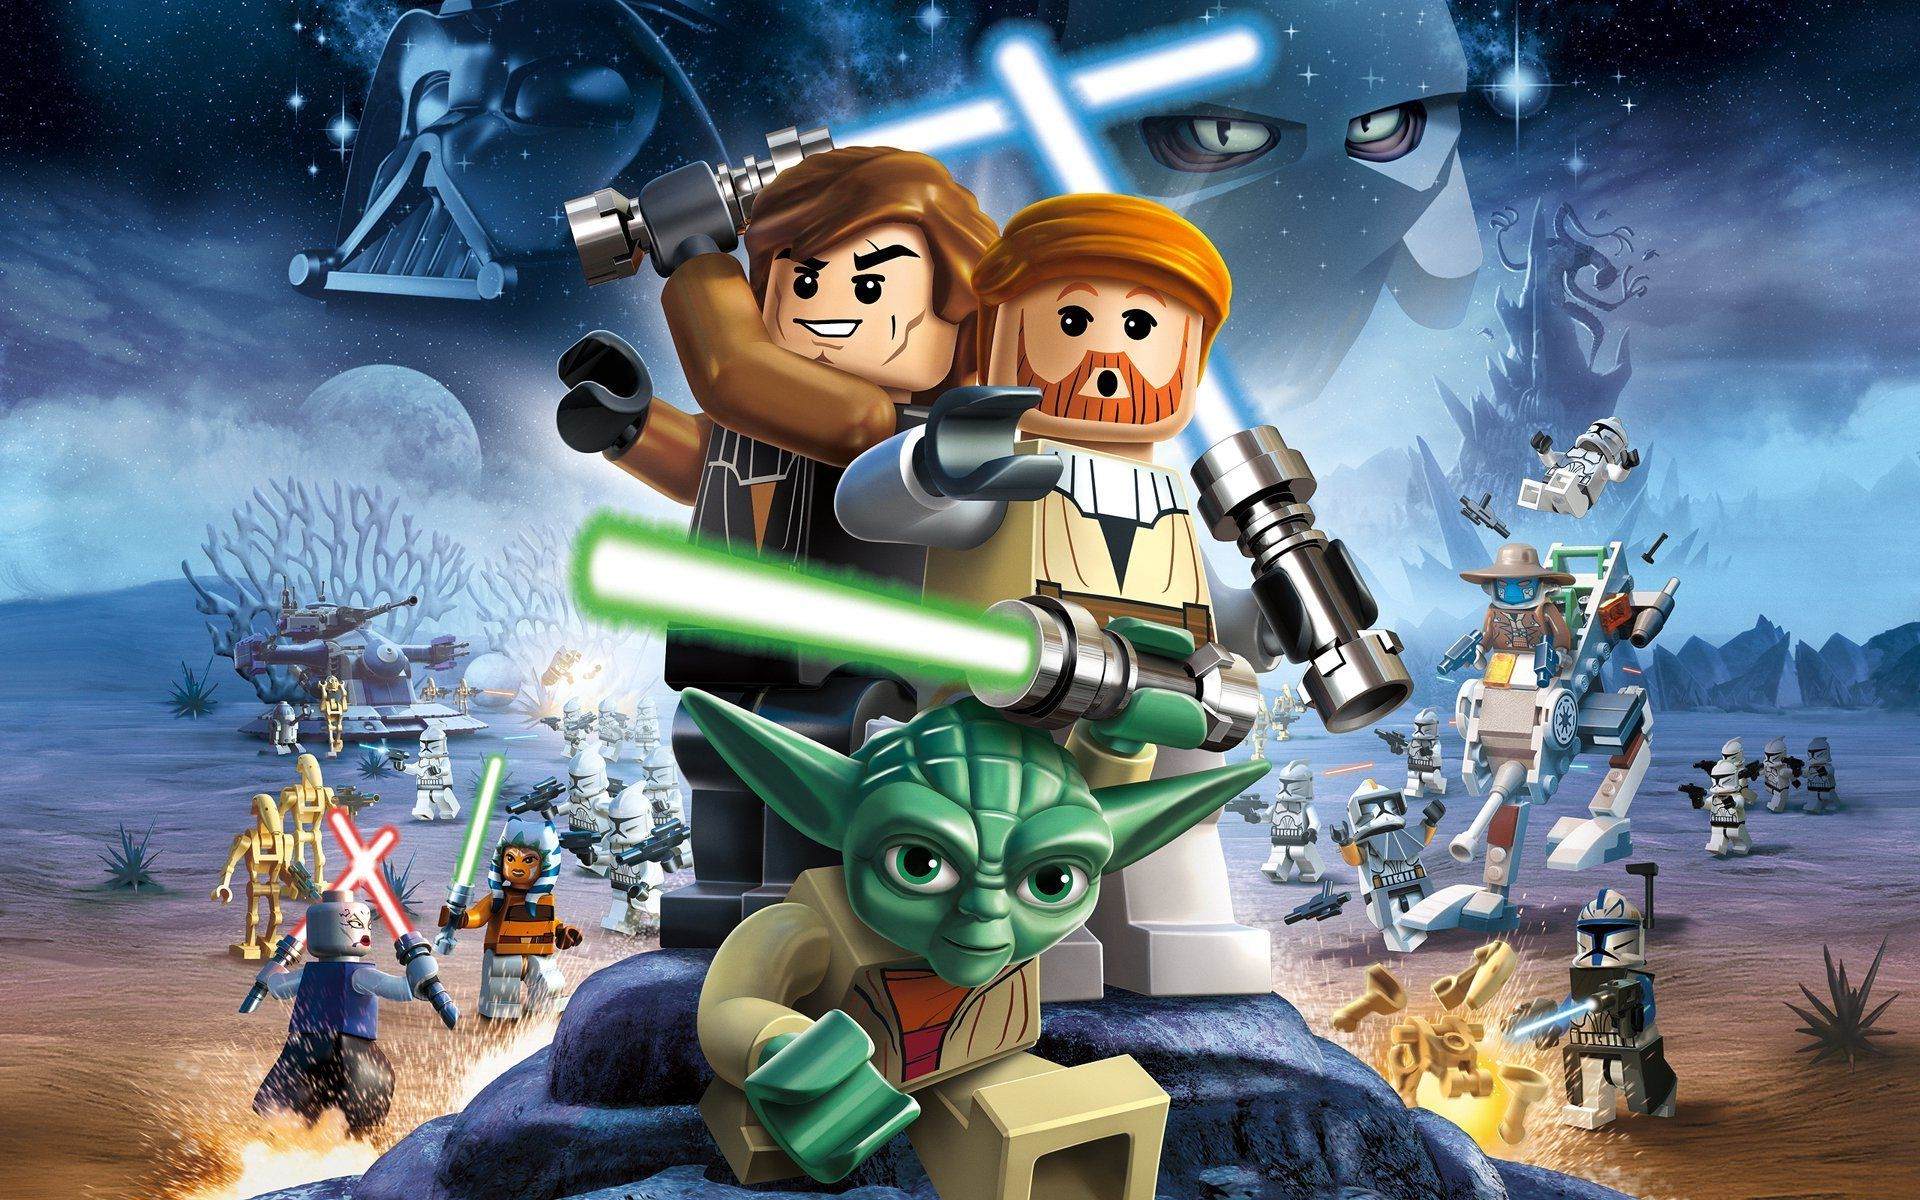 Lego Star Wars Wallpapers Top Free Lego Star Wars Backgrounds